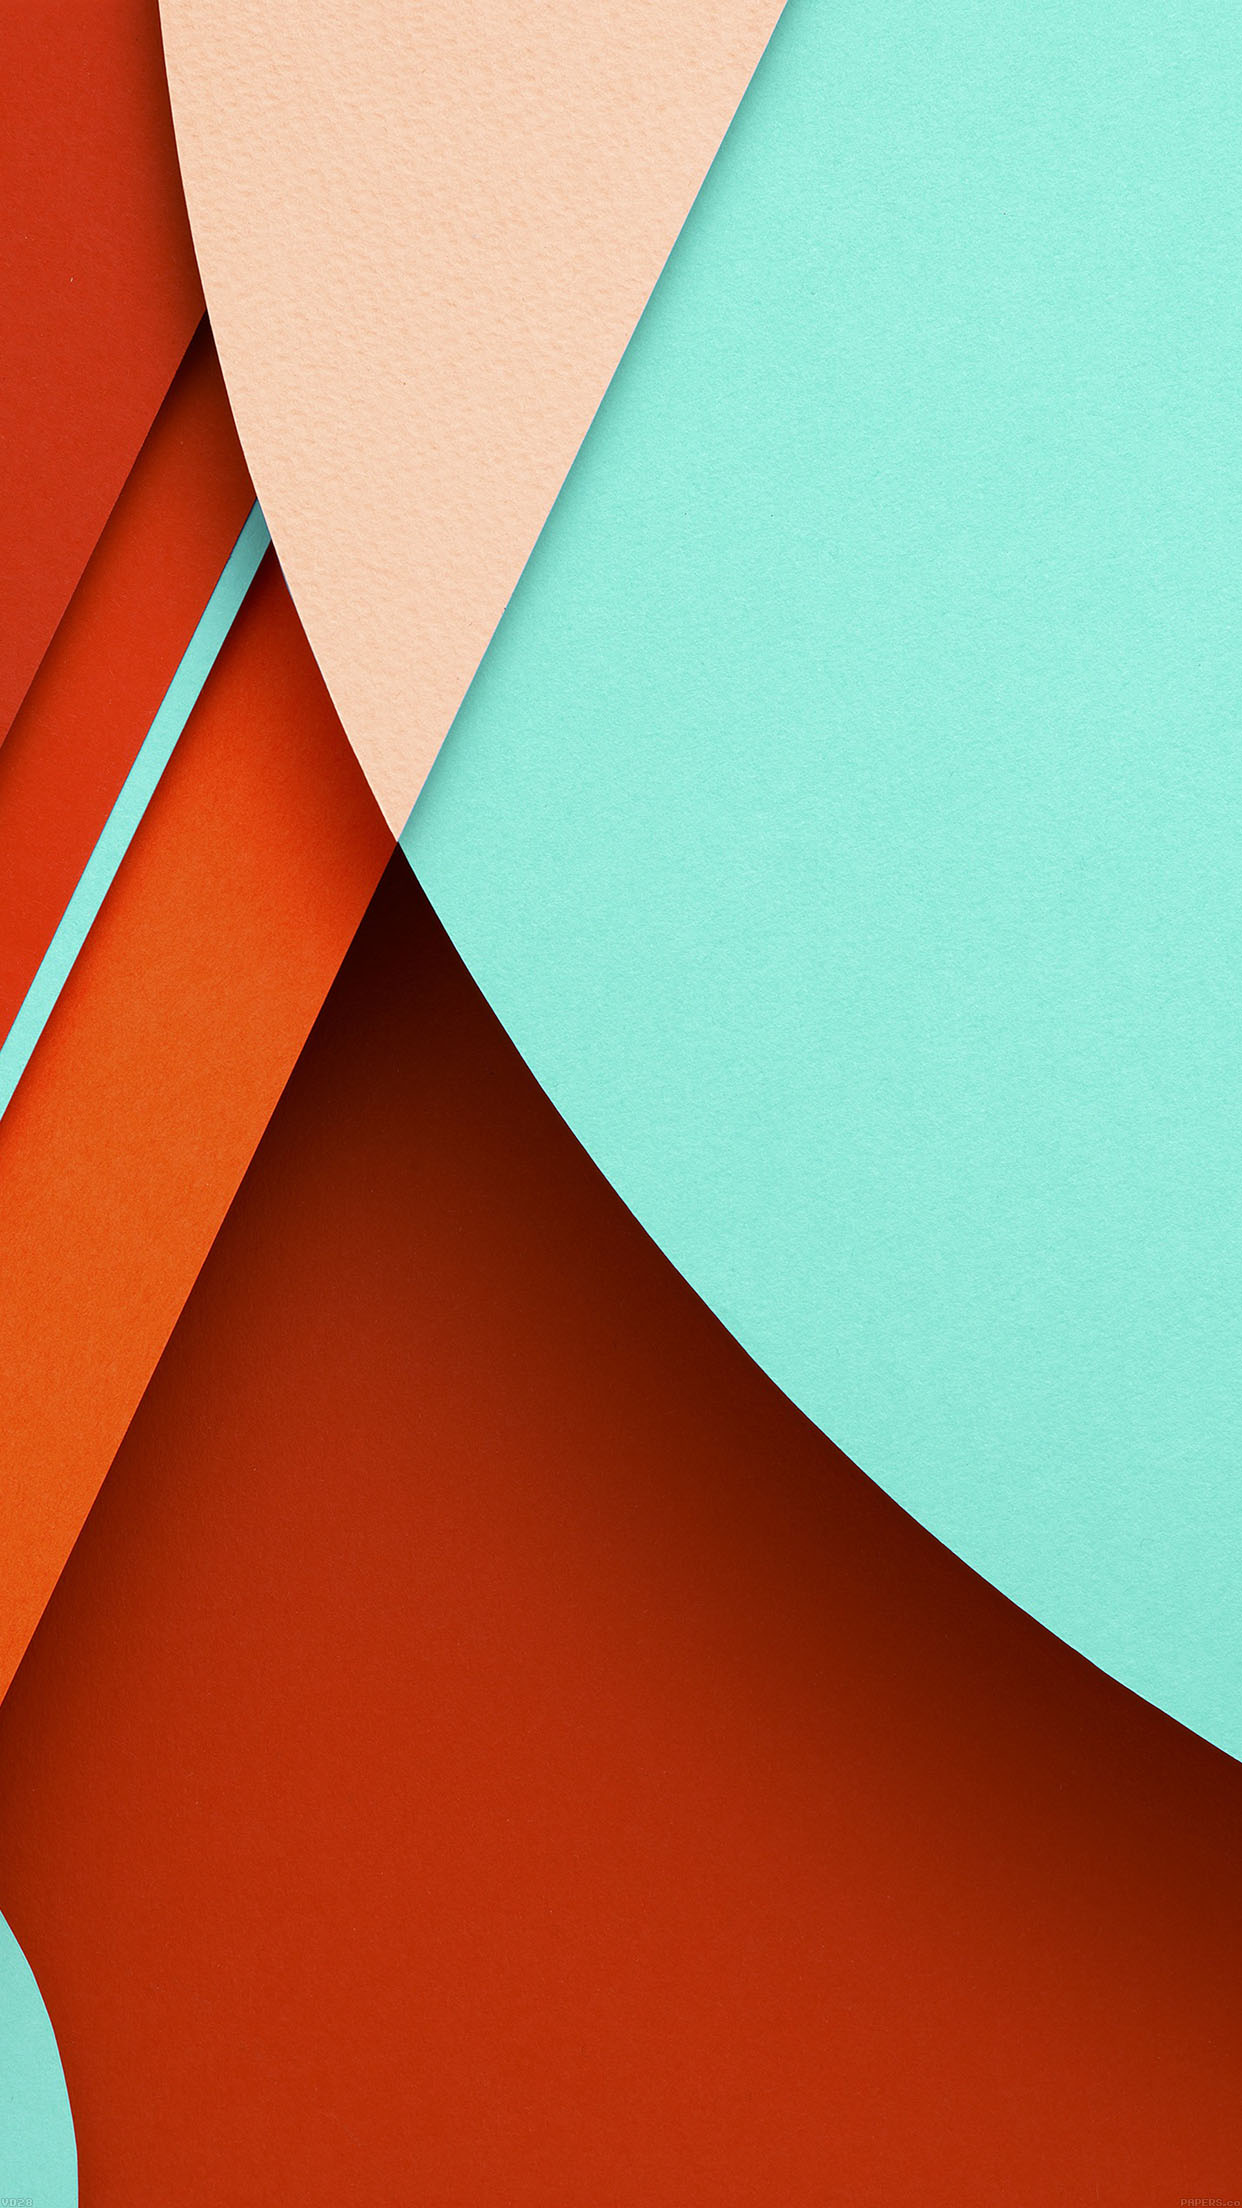 Iphone6papers Vd28 Lollipop Android Official Wallpapers Set